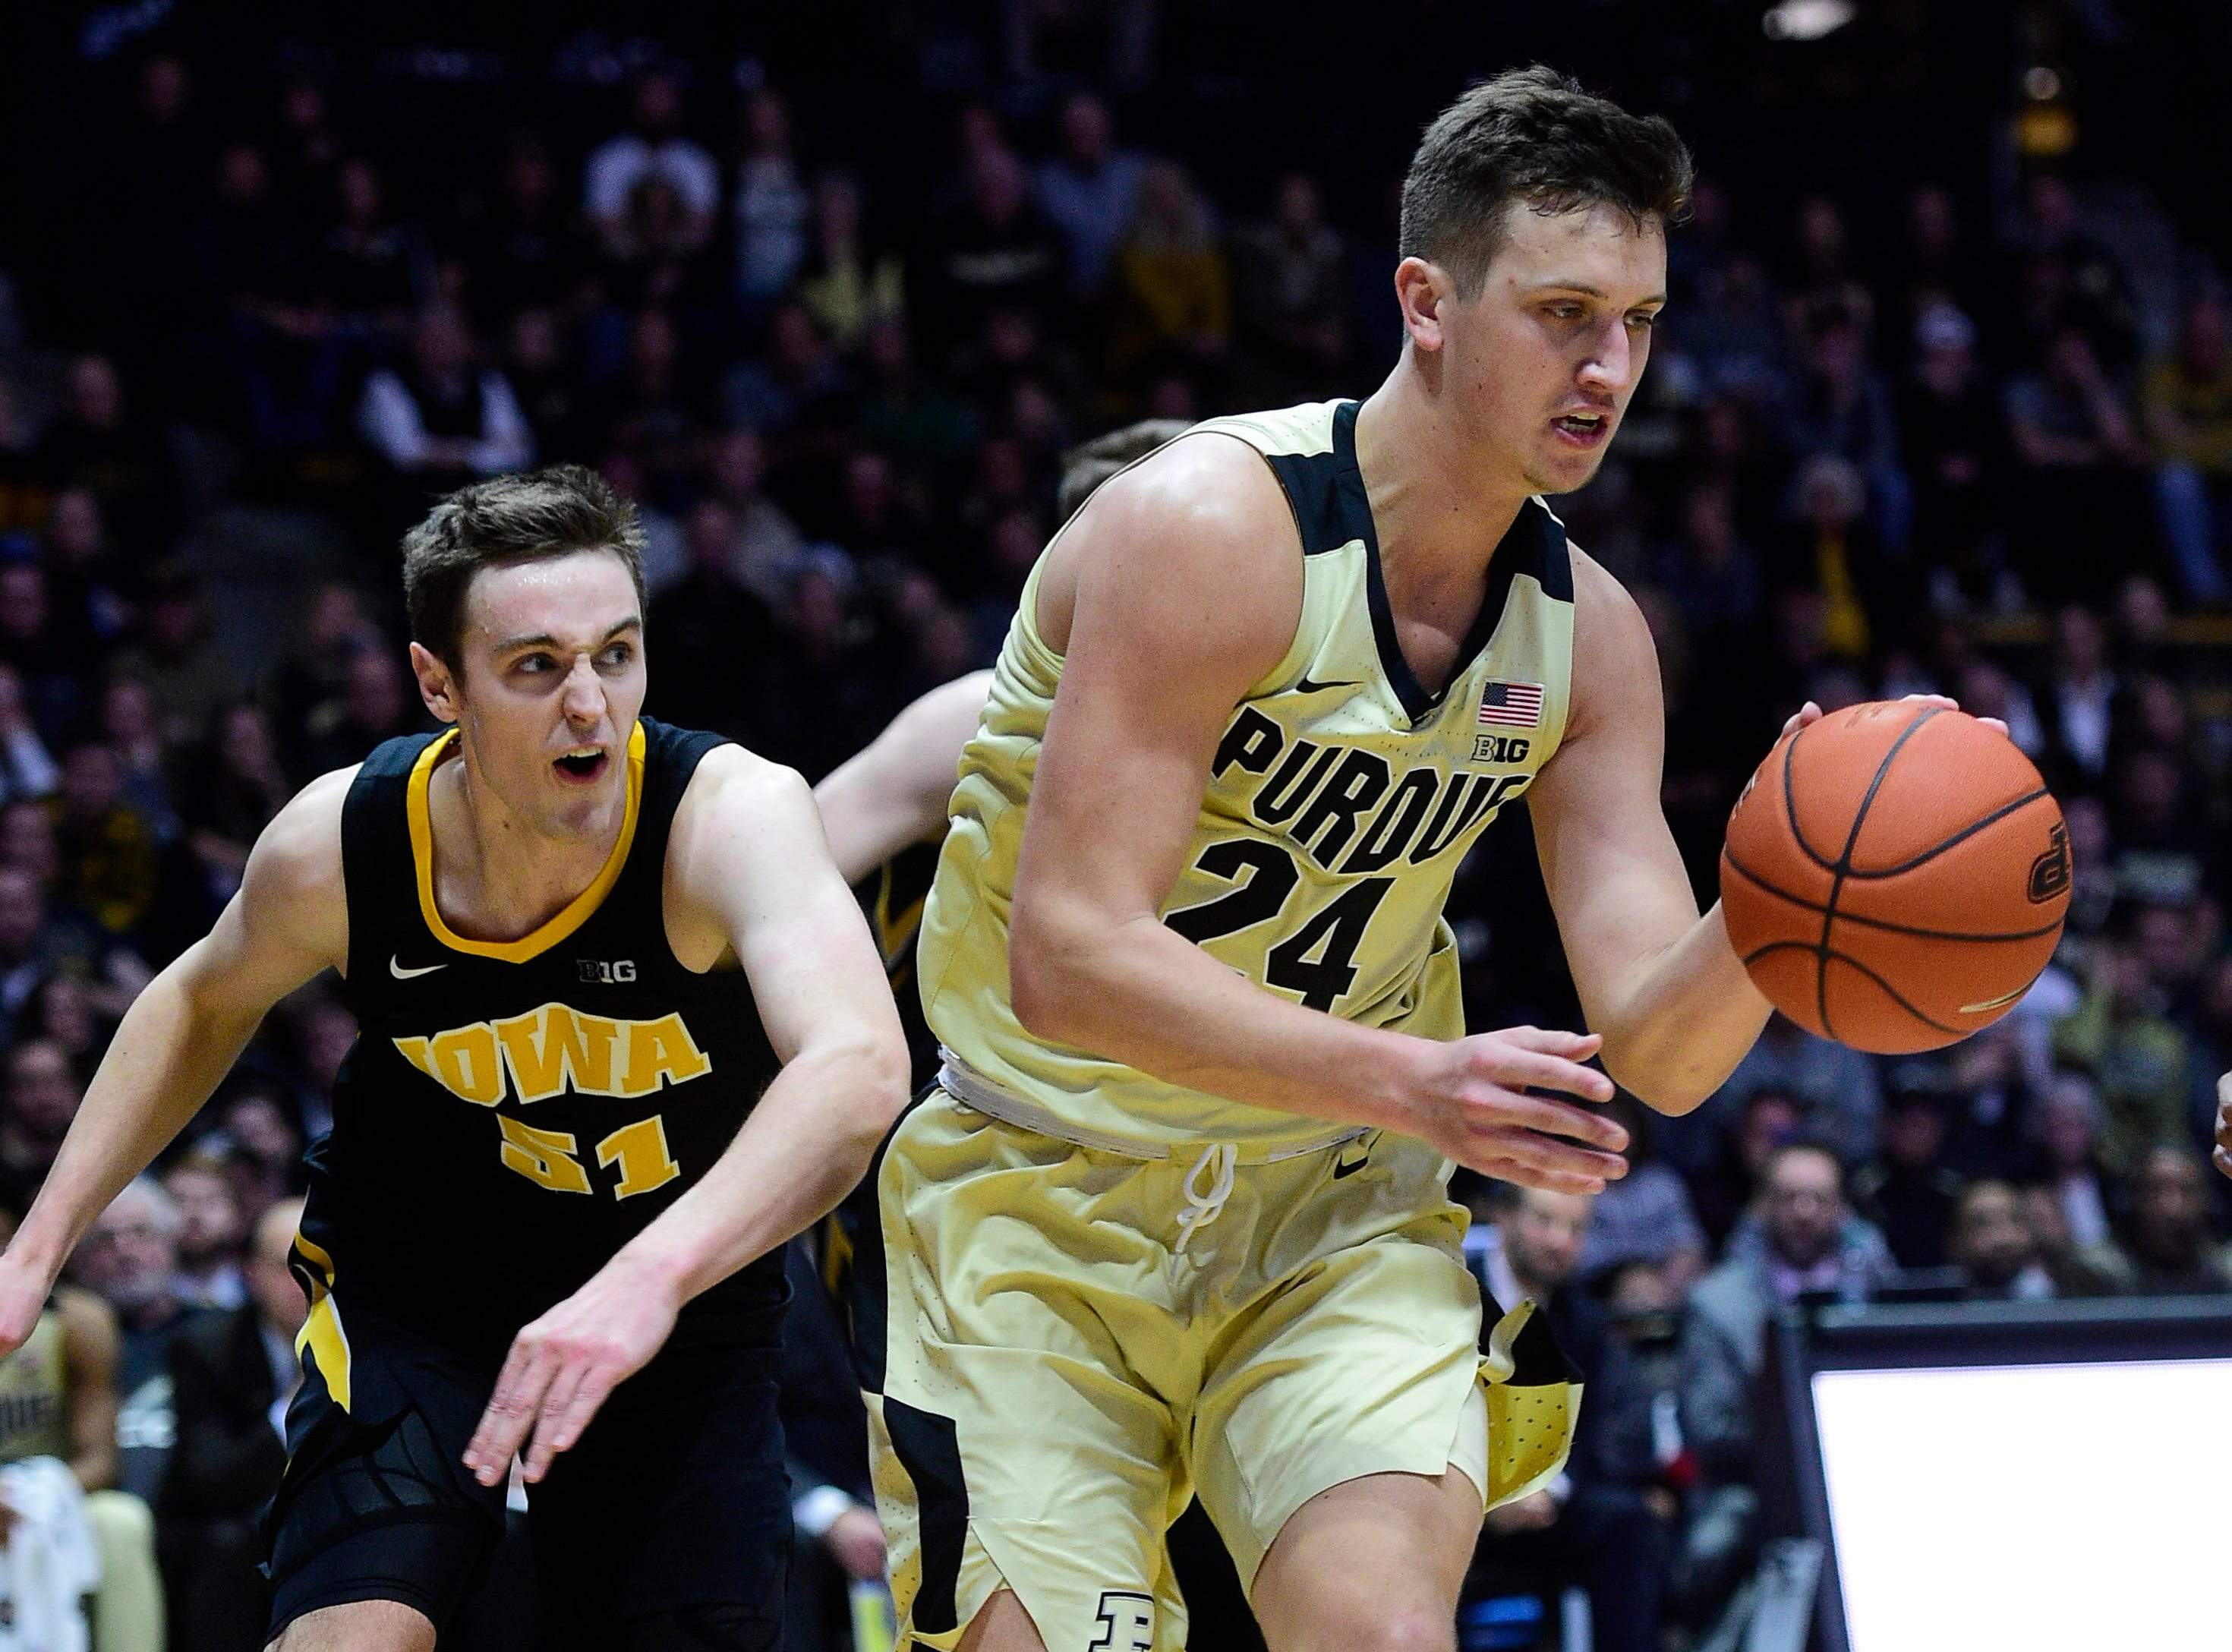 Jan 3, 2019; West Lafayette, IN, USA; Purdue Boilermakers   forward Grady Eifert (24) dribbles past Iowa Hawkeyes forward Nicholas Baer (51)  in the second half at Mackey Arena. Mandatory Credit: Thomas J. Russo-USA TODAY Sports